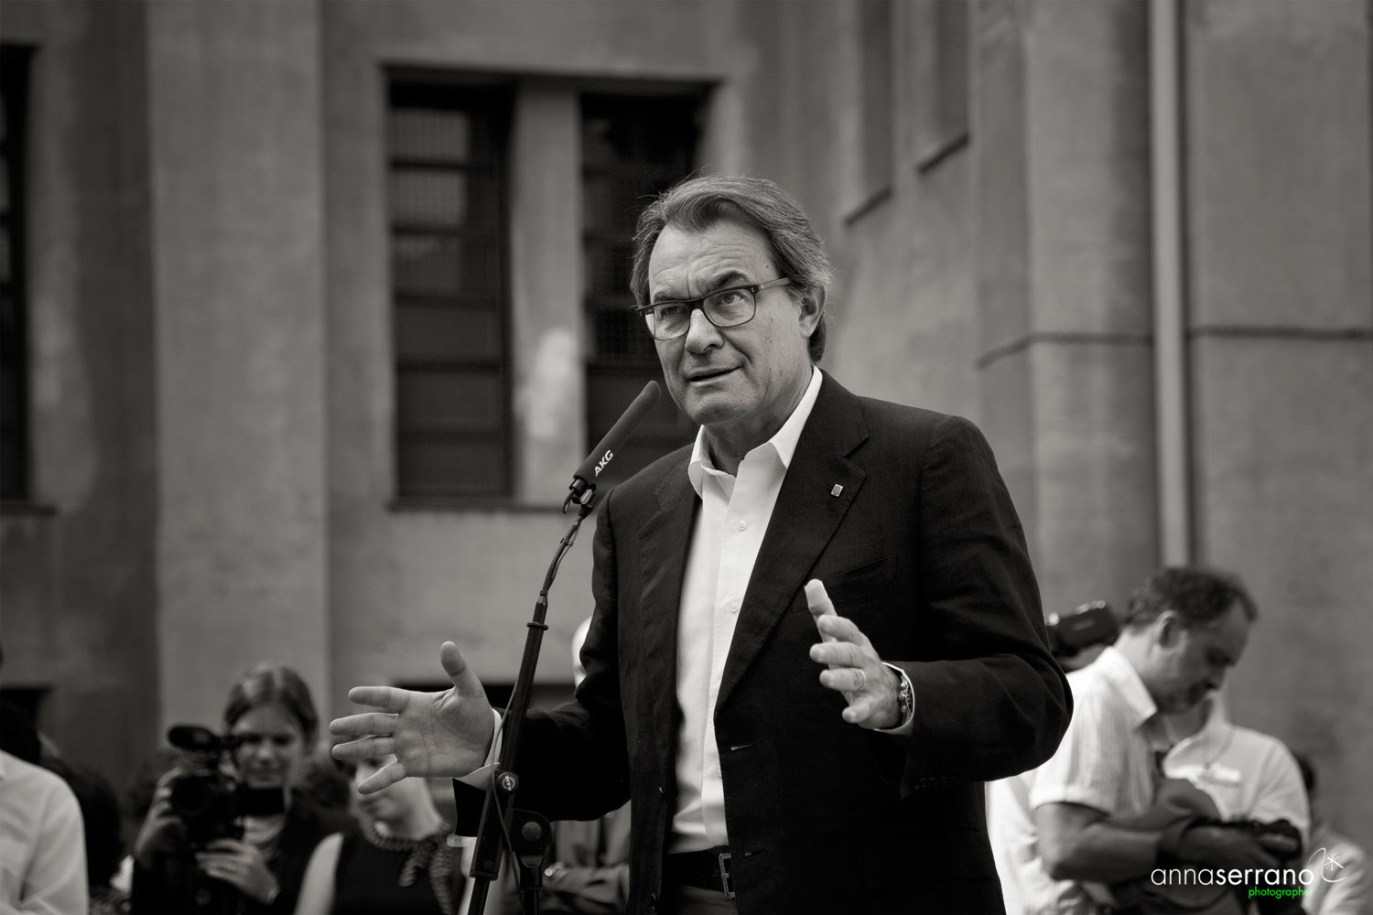 Artur Mas, ex President of the Catalan Government